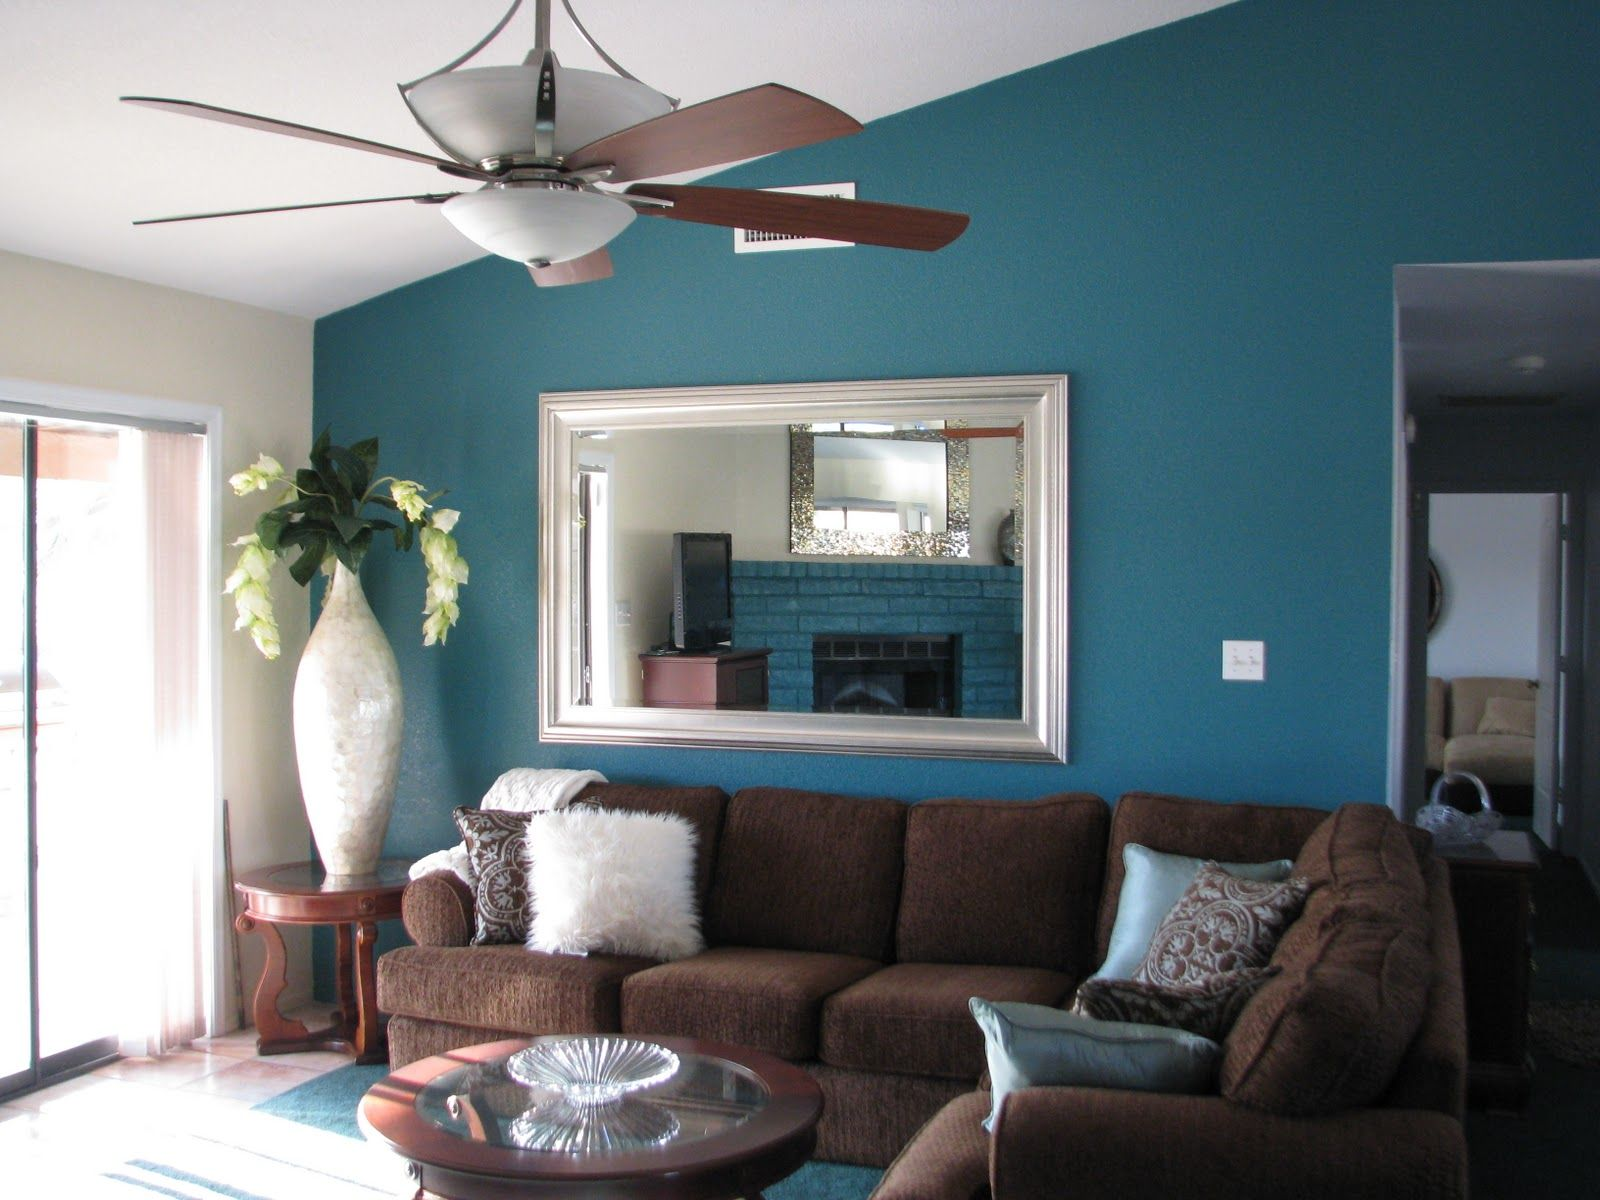 Blue Brown And Green Living Room navy blue living room wall will looks harmonious with dark brown